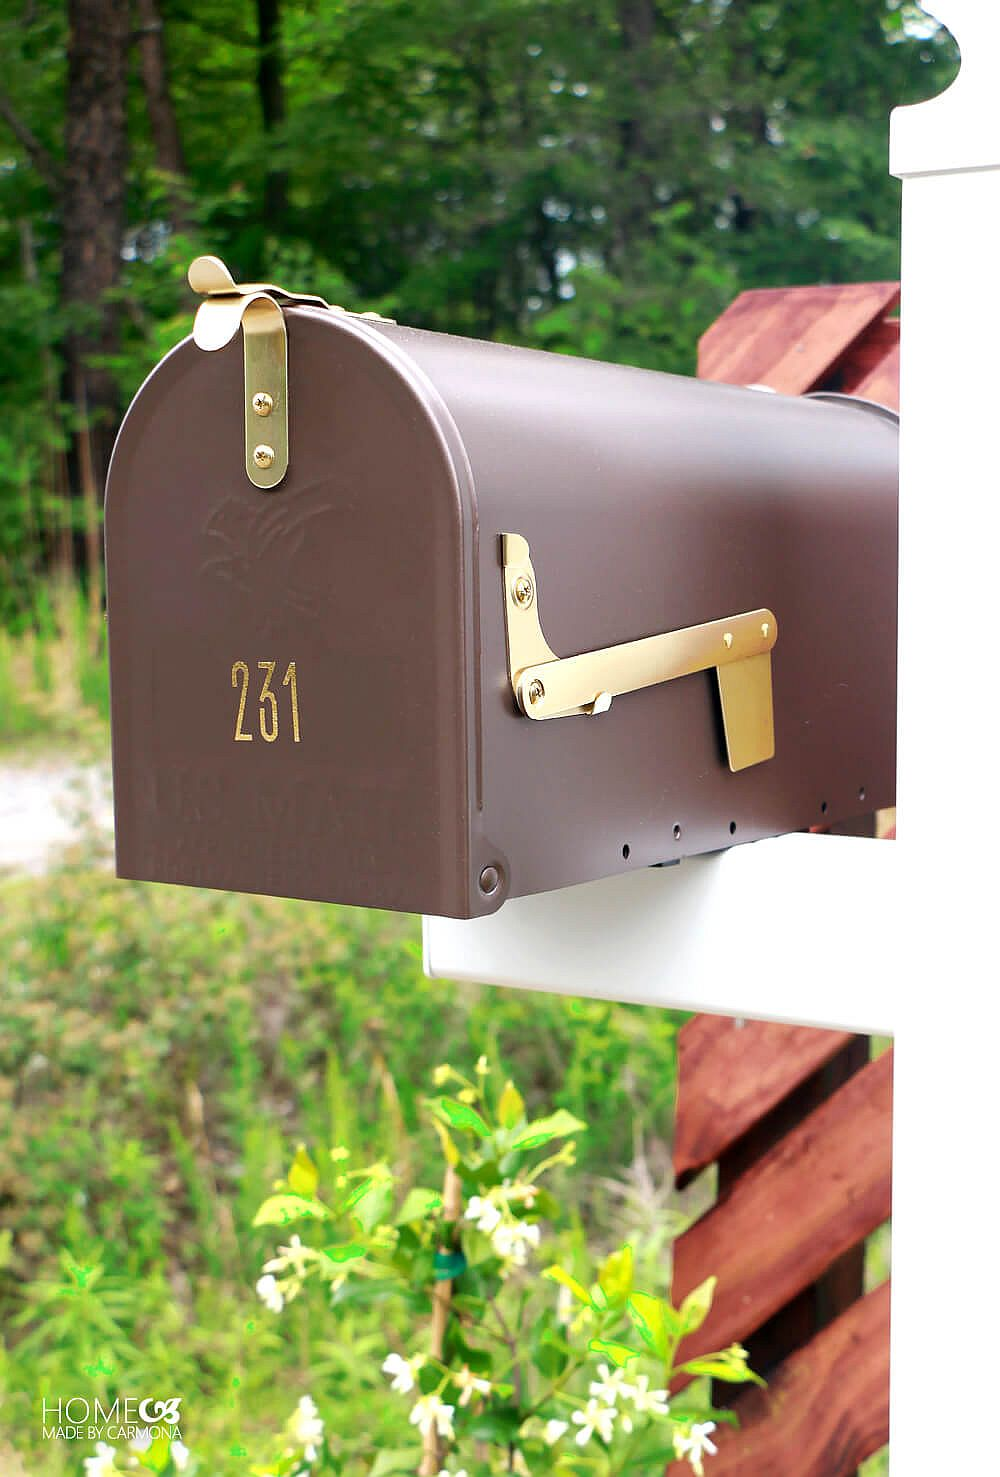 Personal-stylized-DIY-mailbox-idea